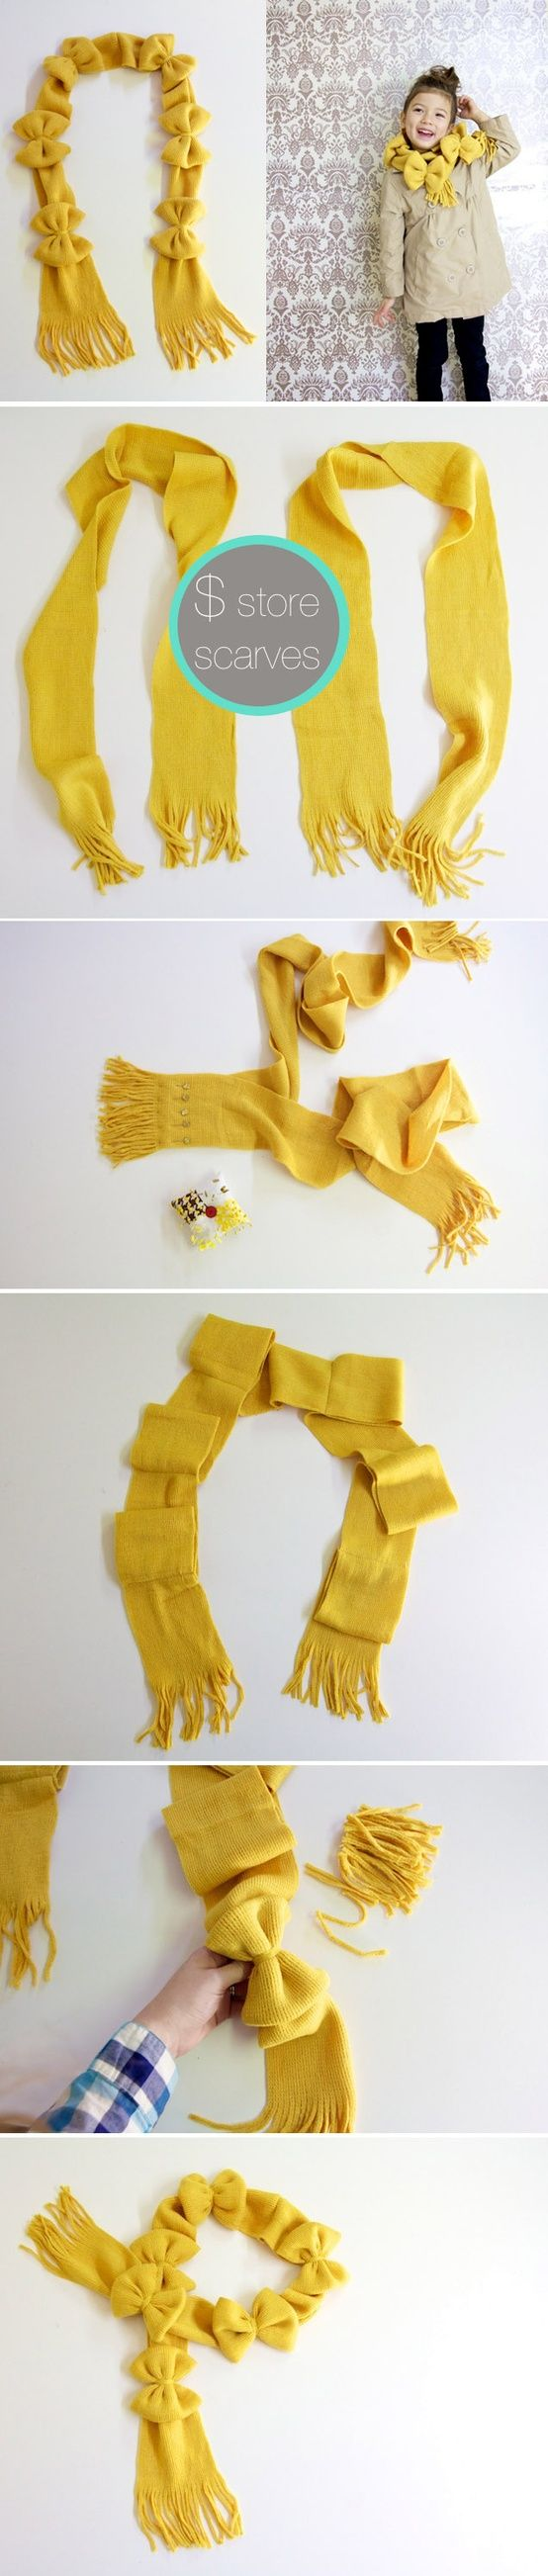 Love this adorable idea! Might even switch up the color used to make the middle part of the bow for added color :)